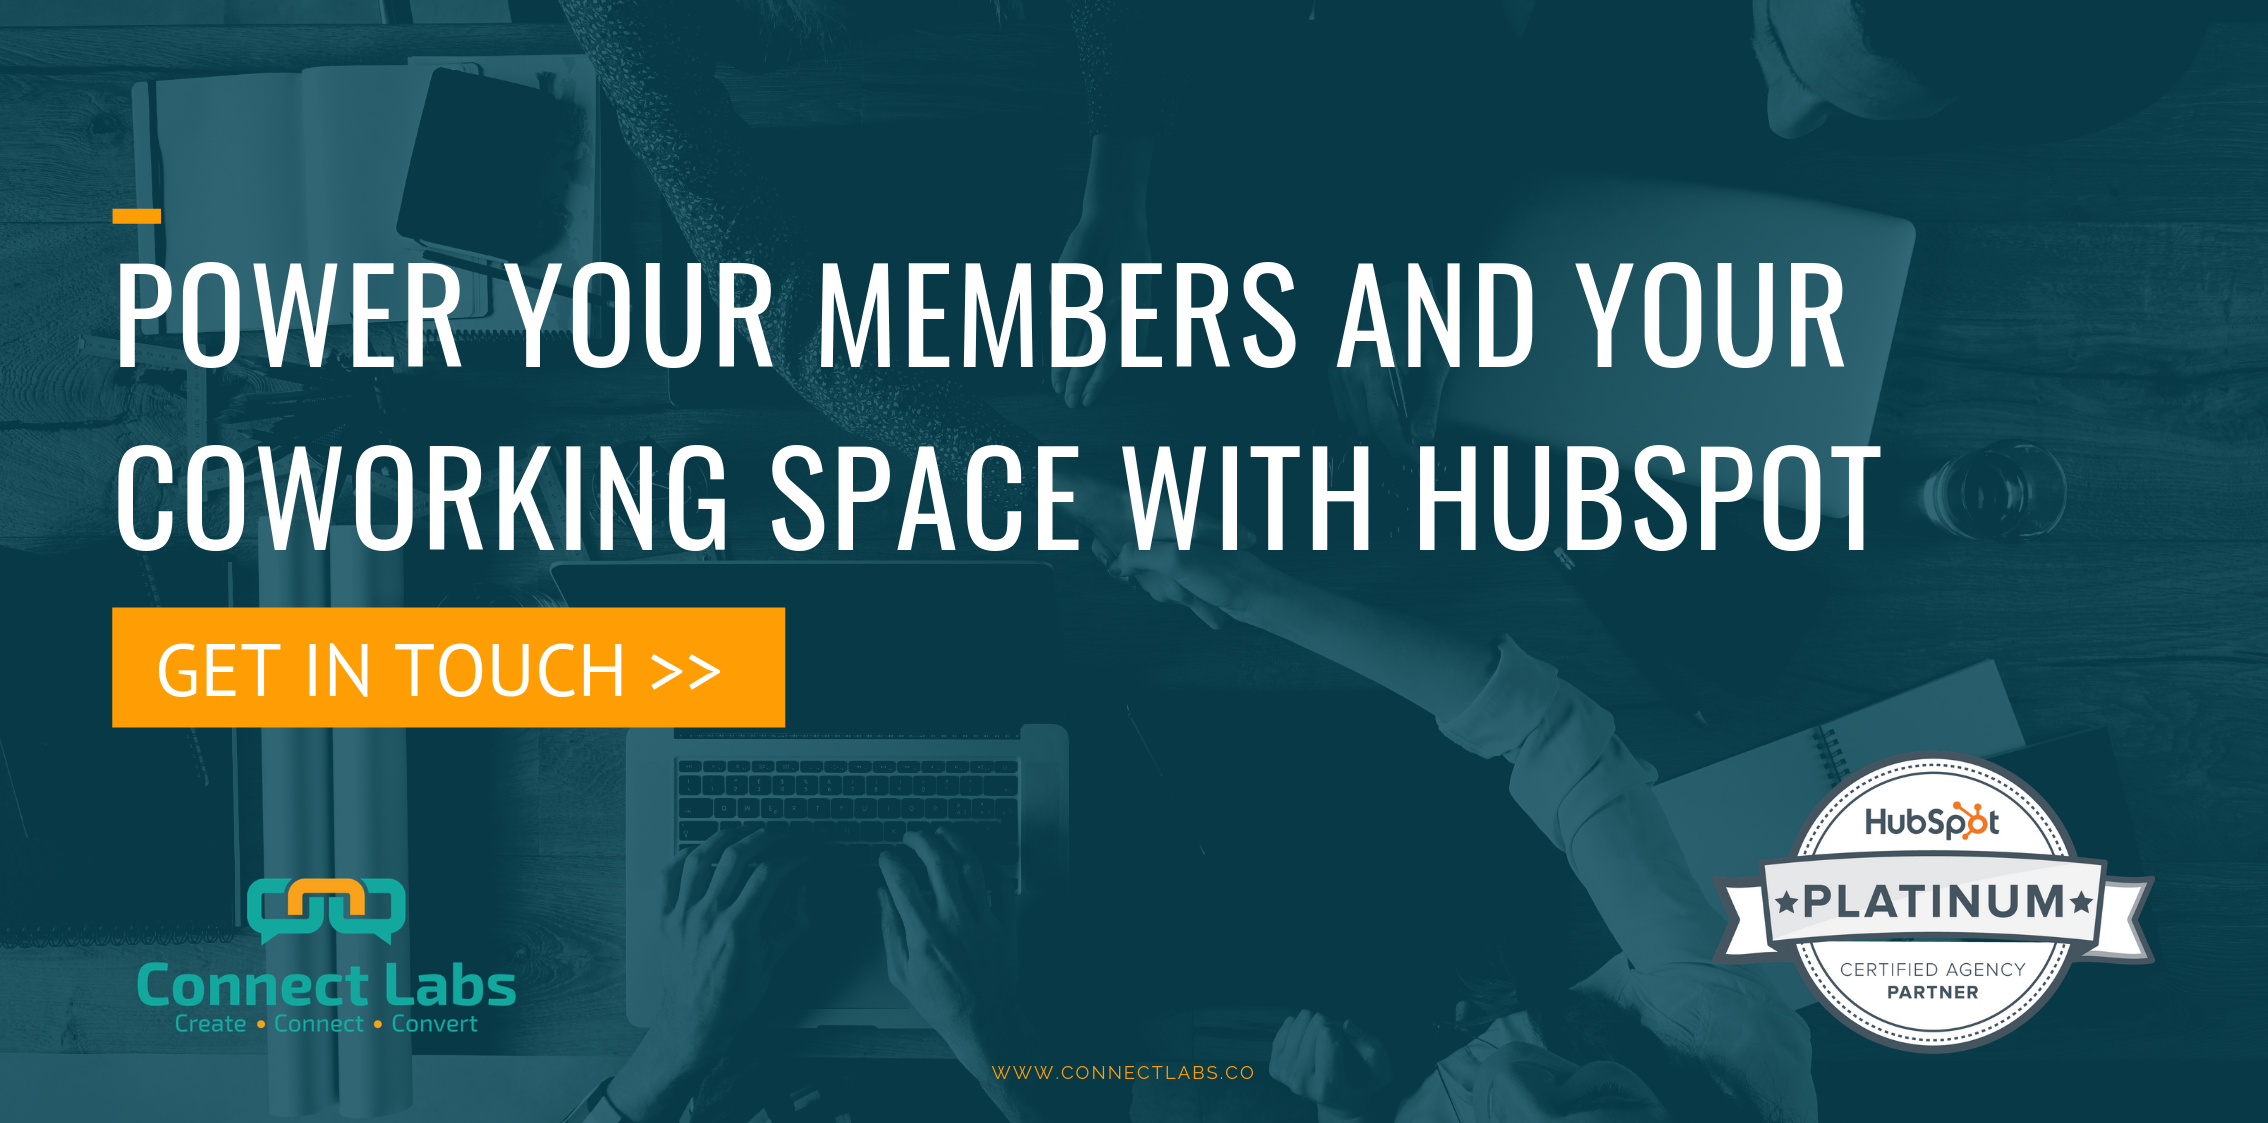 coworking spaces and membership with HubSpot